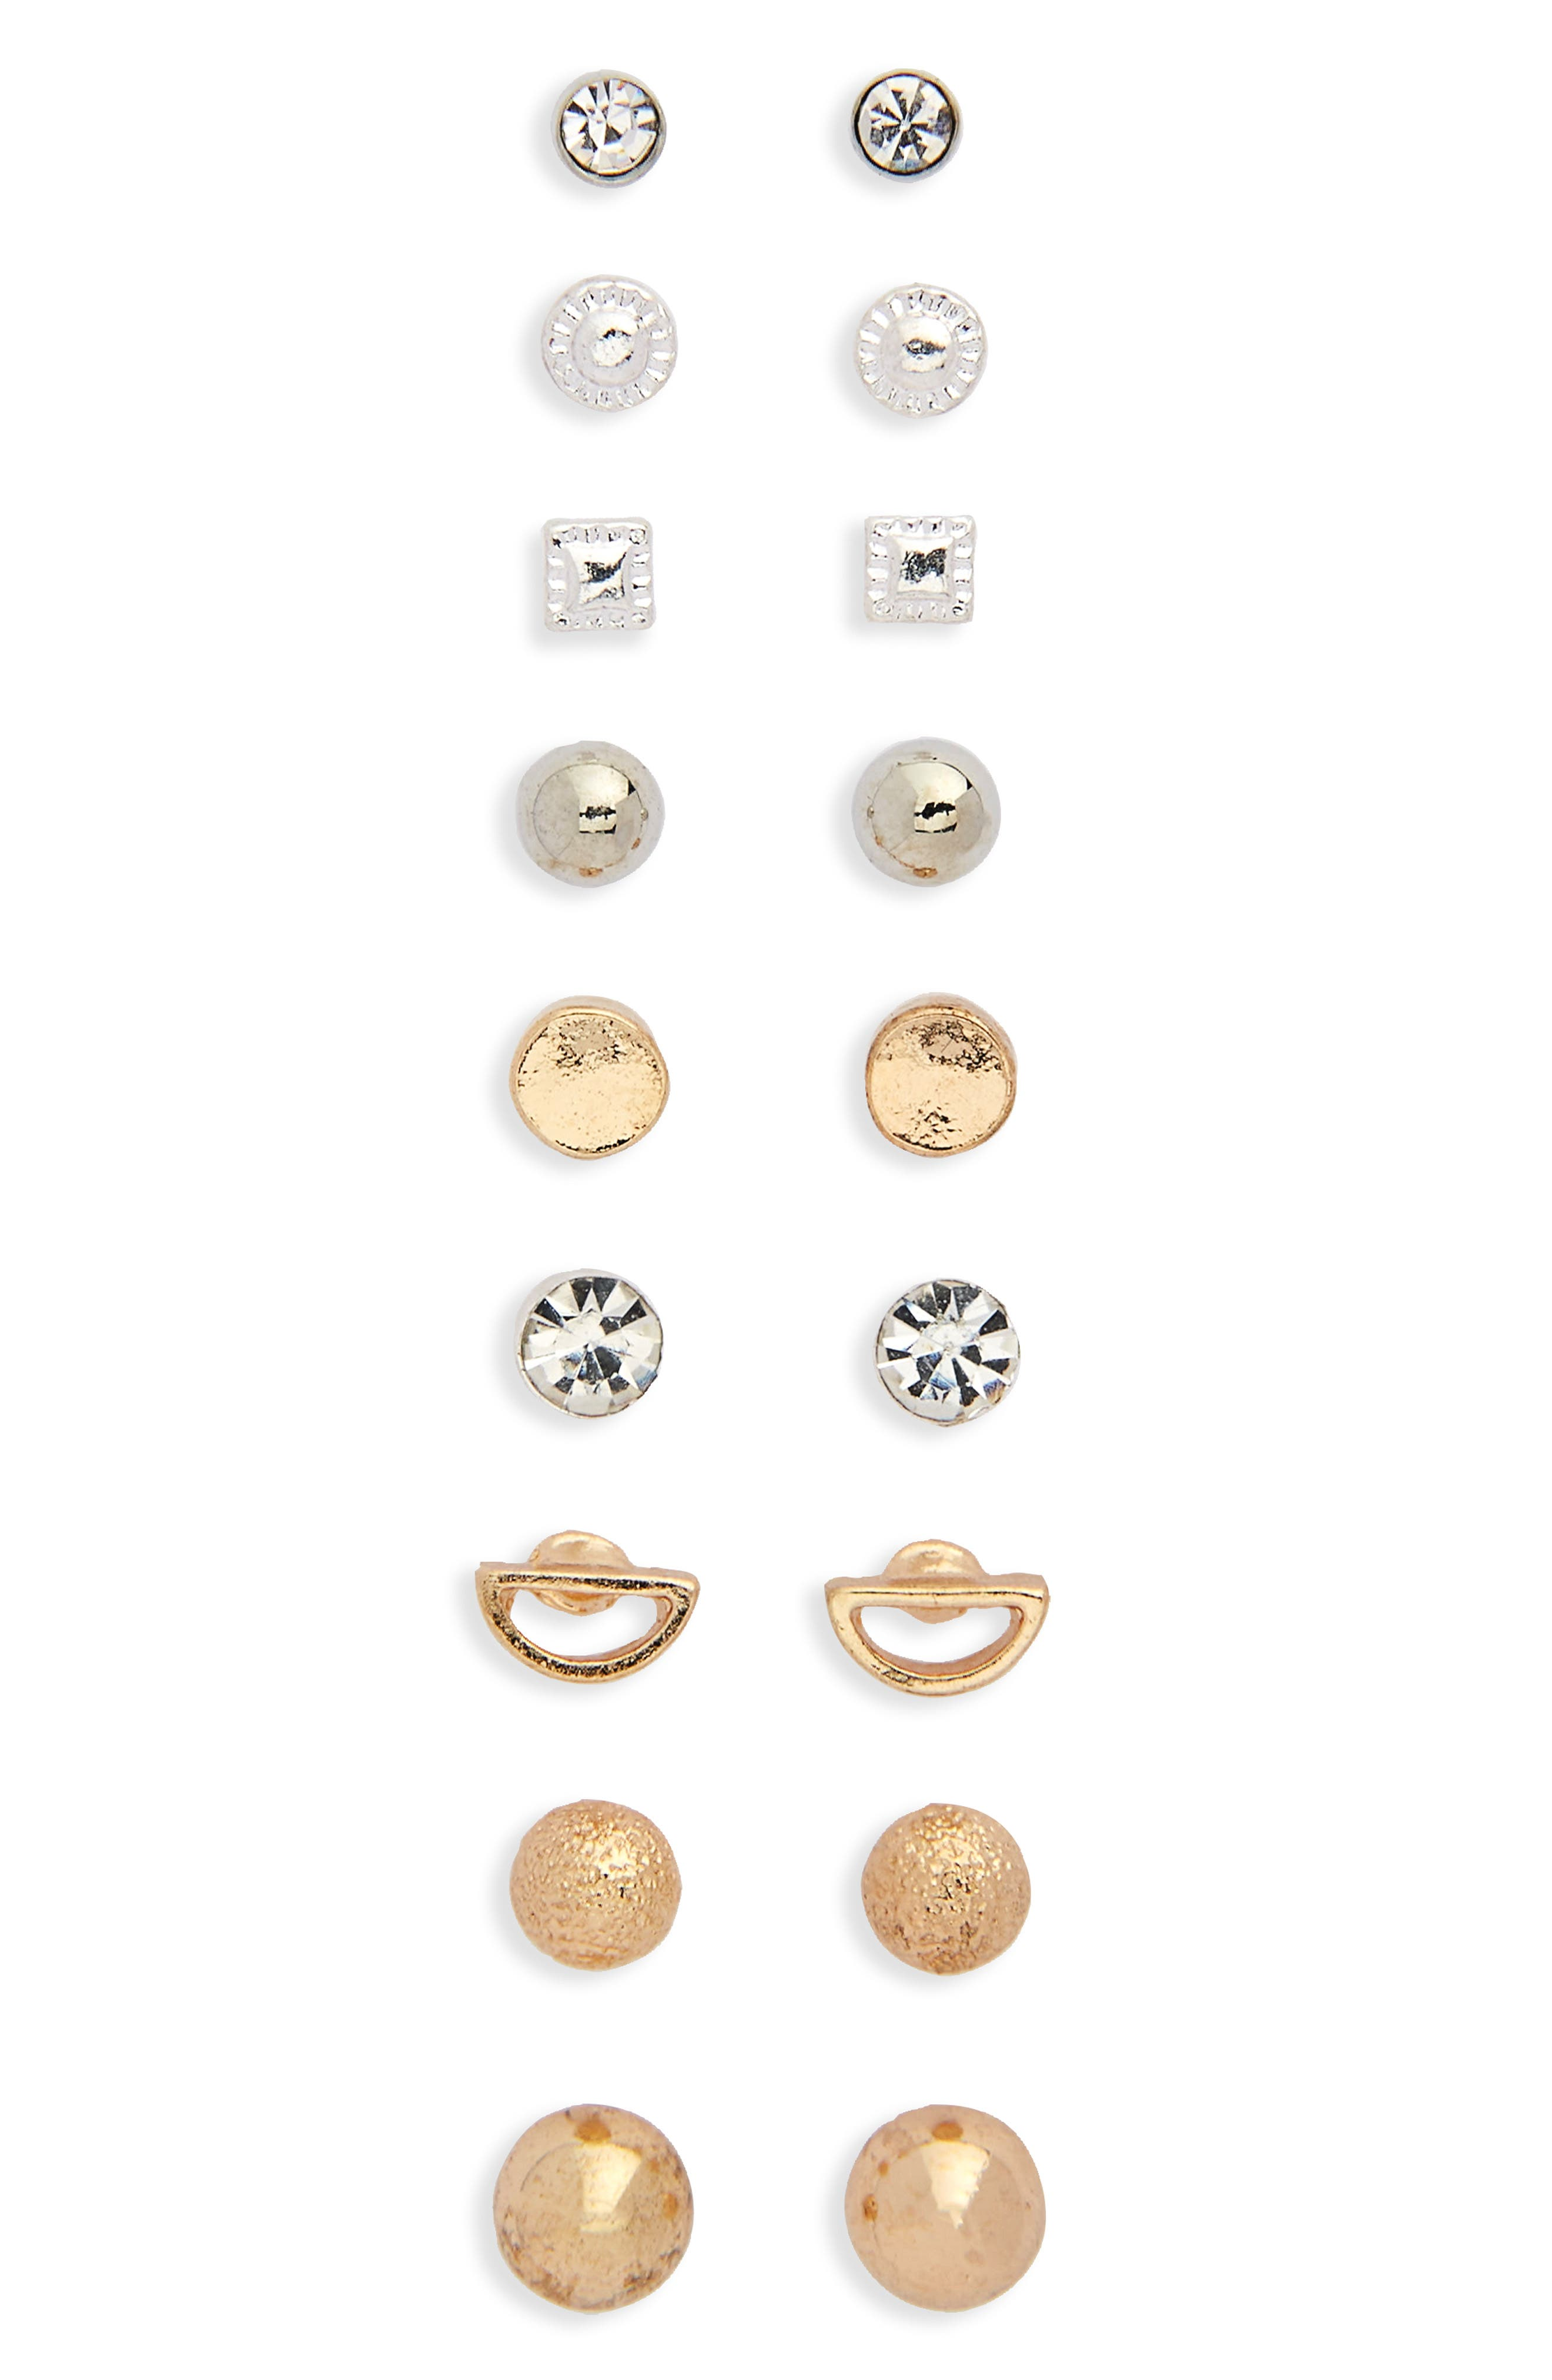 9-Pack Dainty Stud Earrings,                             Main thumbnail 1, color,                             Gold/ Silver